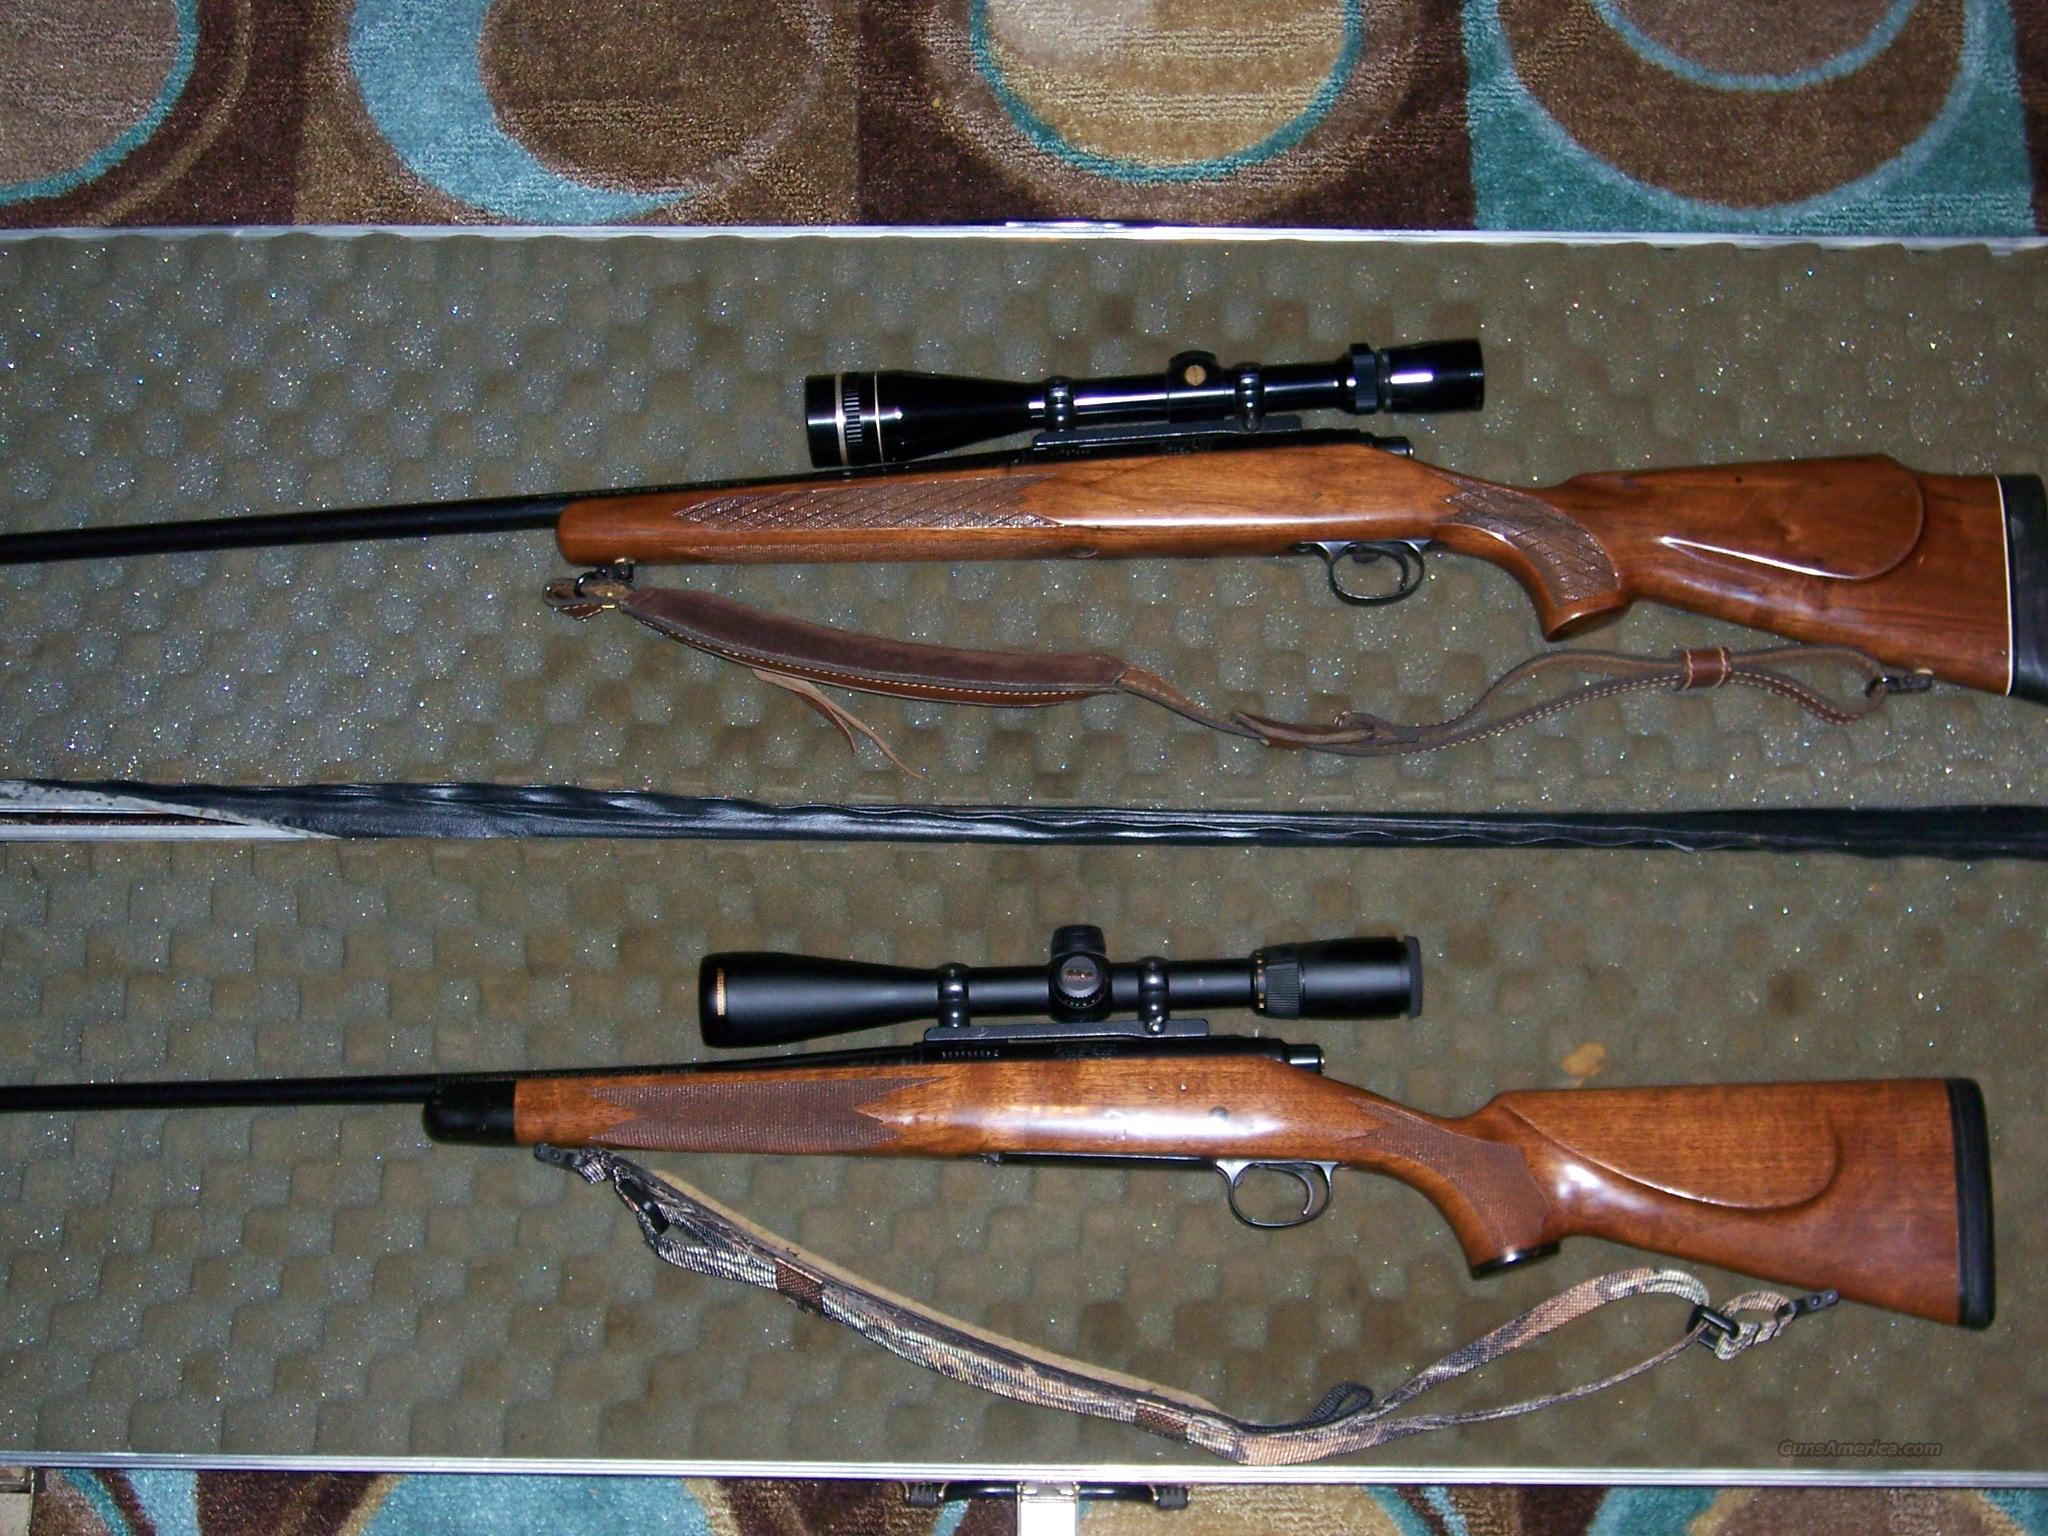 1986 Remington Model 7oo Bdl in Mountain Gun in 280 calibur  Guns > Rifles > Remington Rifles - Modern > Model 700 > Sporting